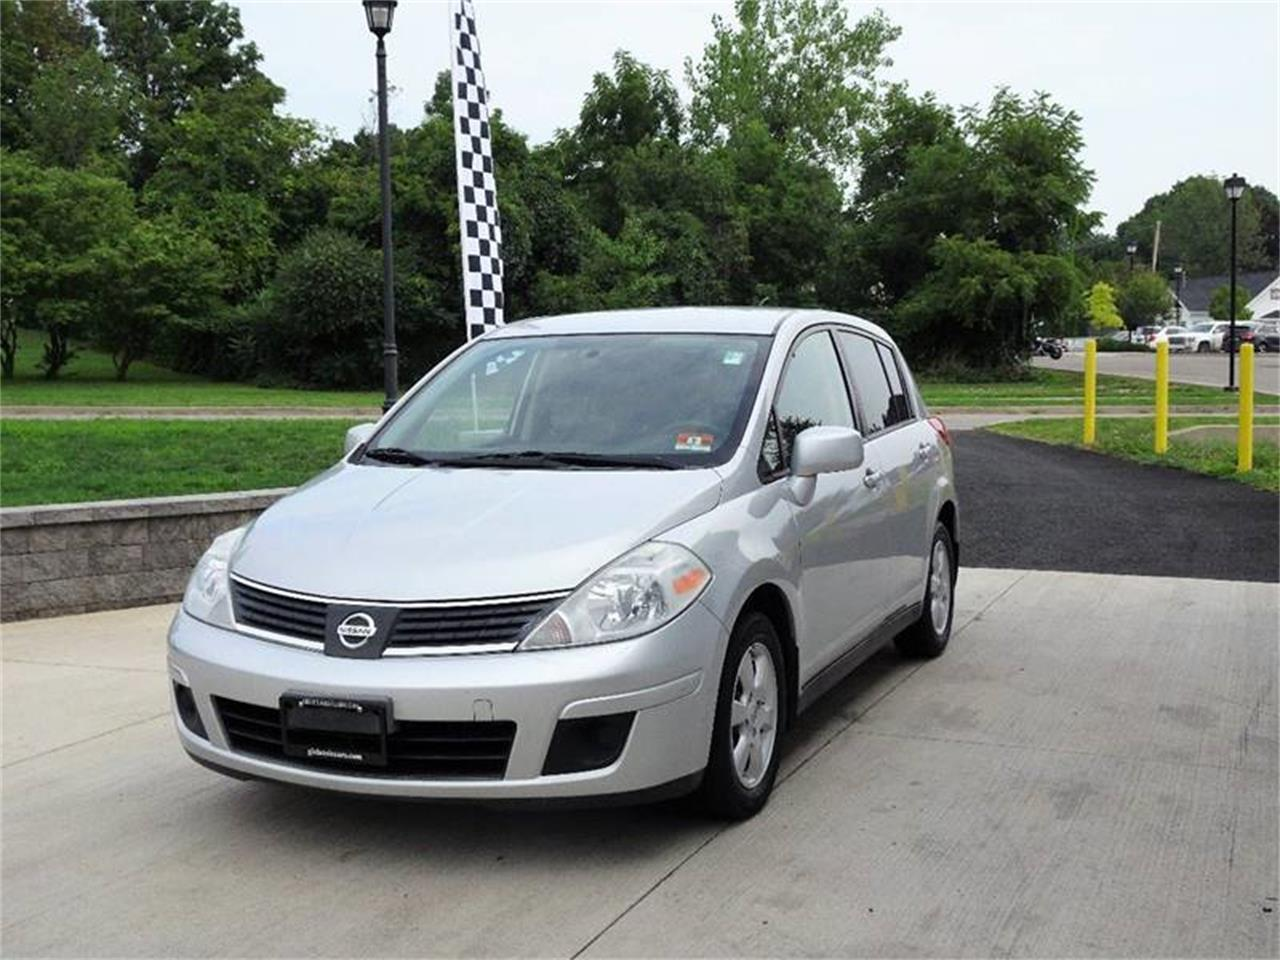 2007 Nissan Versa for sale in Hilton, NY – photo 27